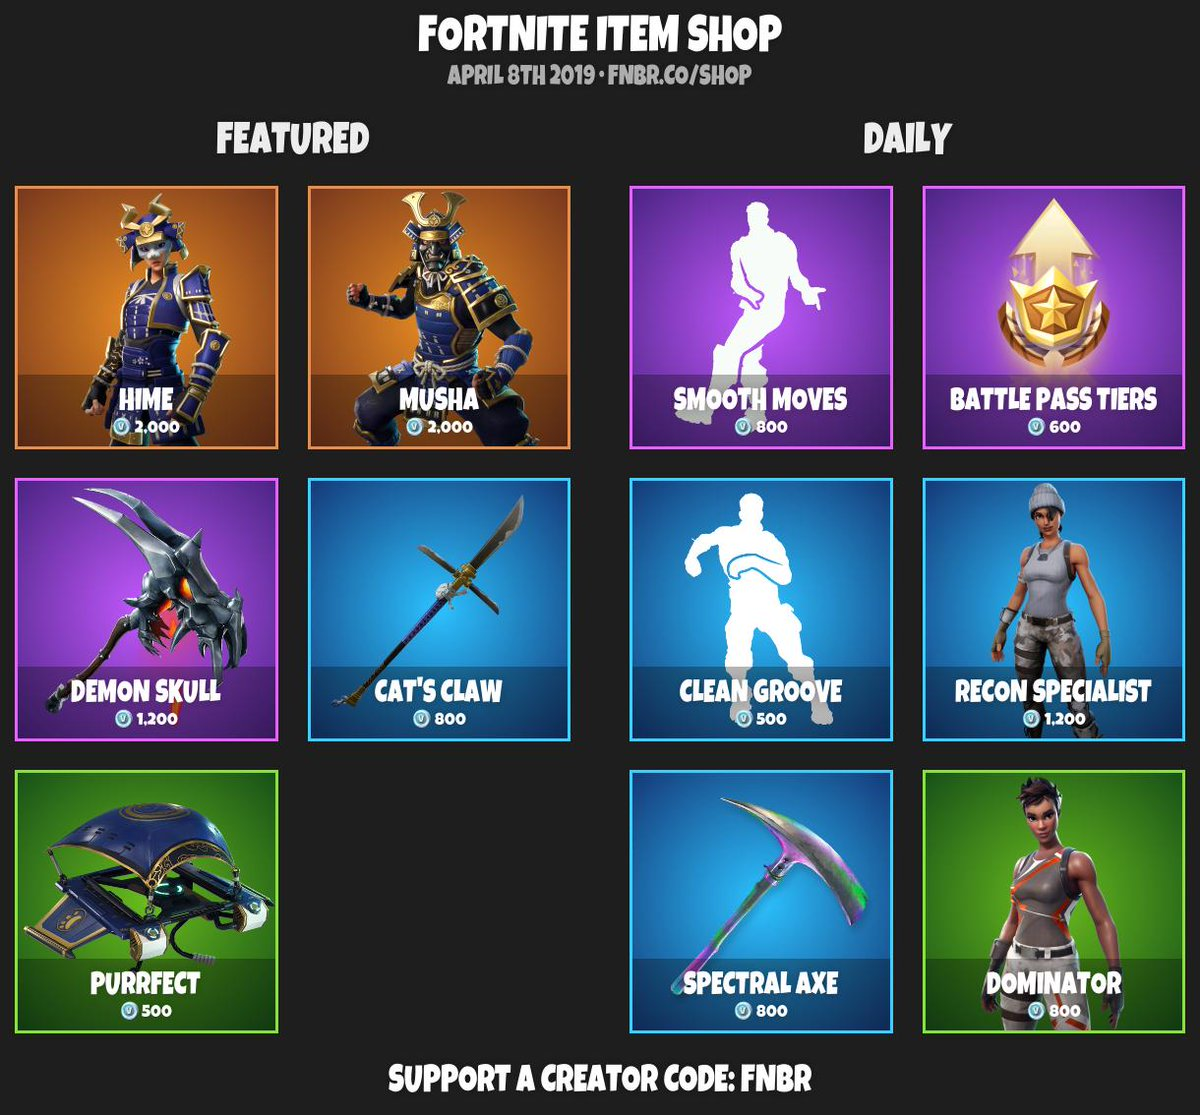 Fortnite Item Shop Today March 4 2019 | Fortnite Generator V